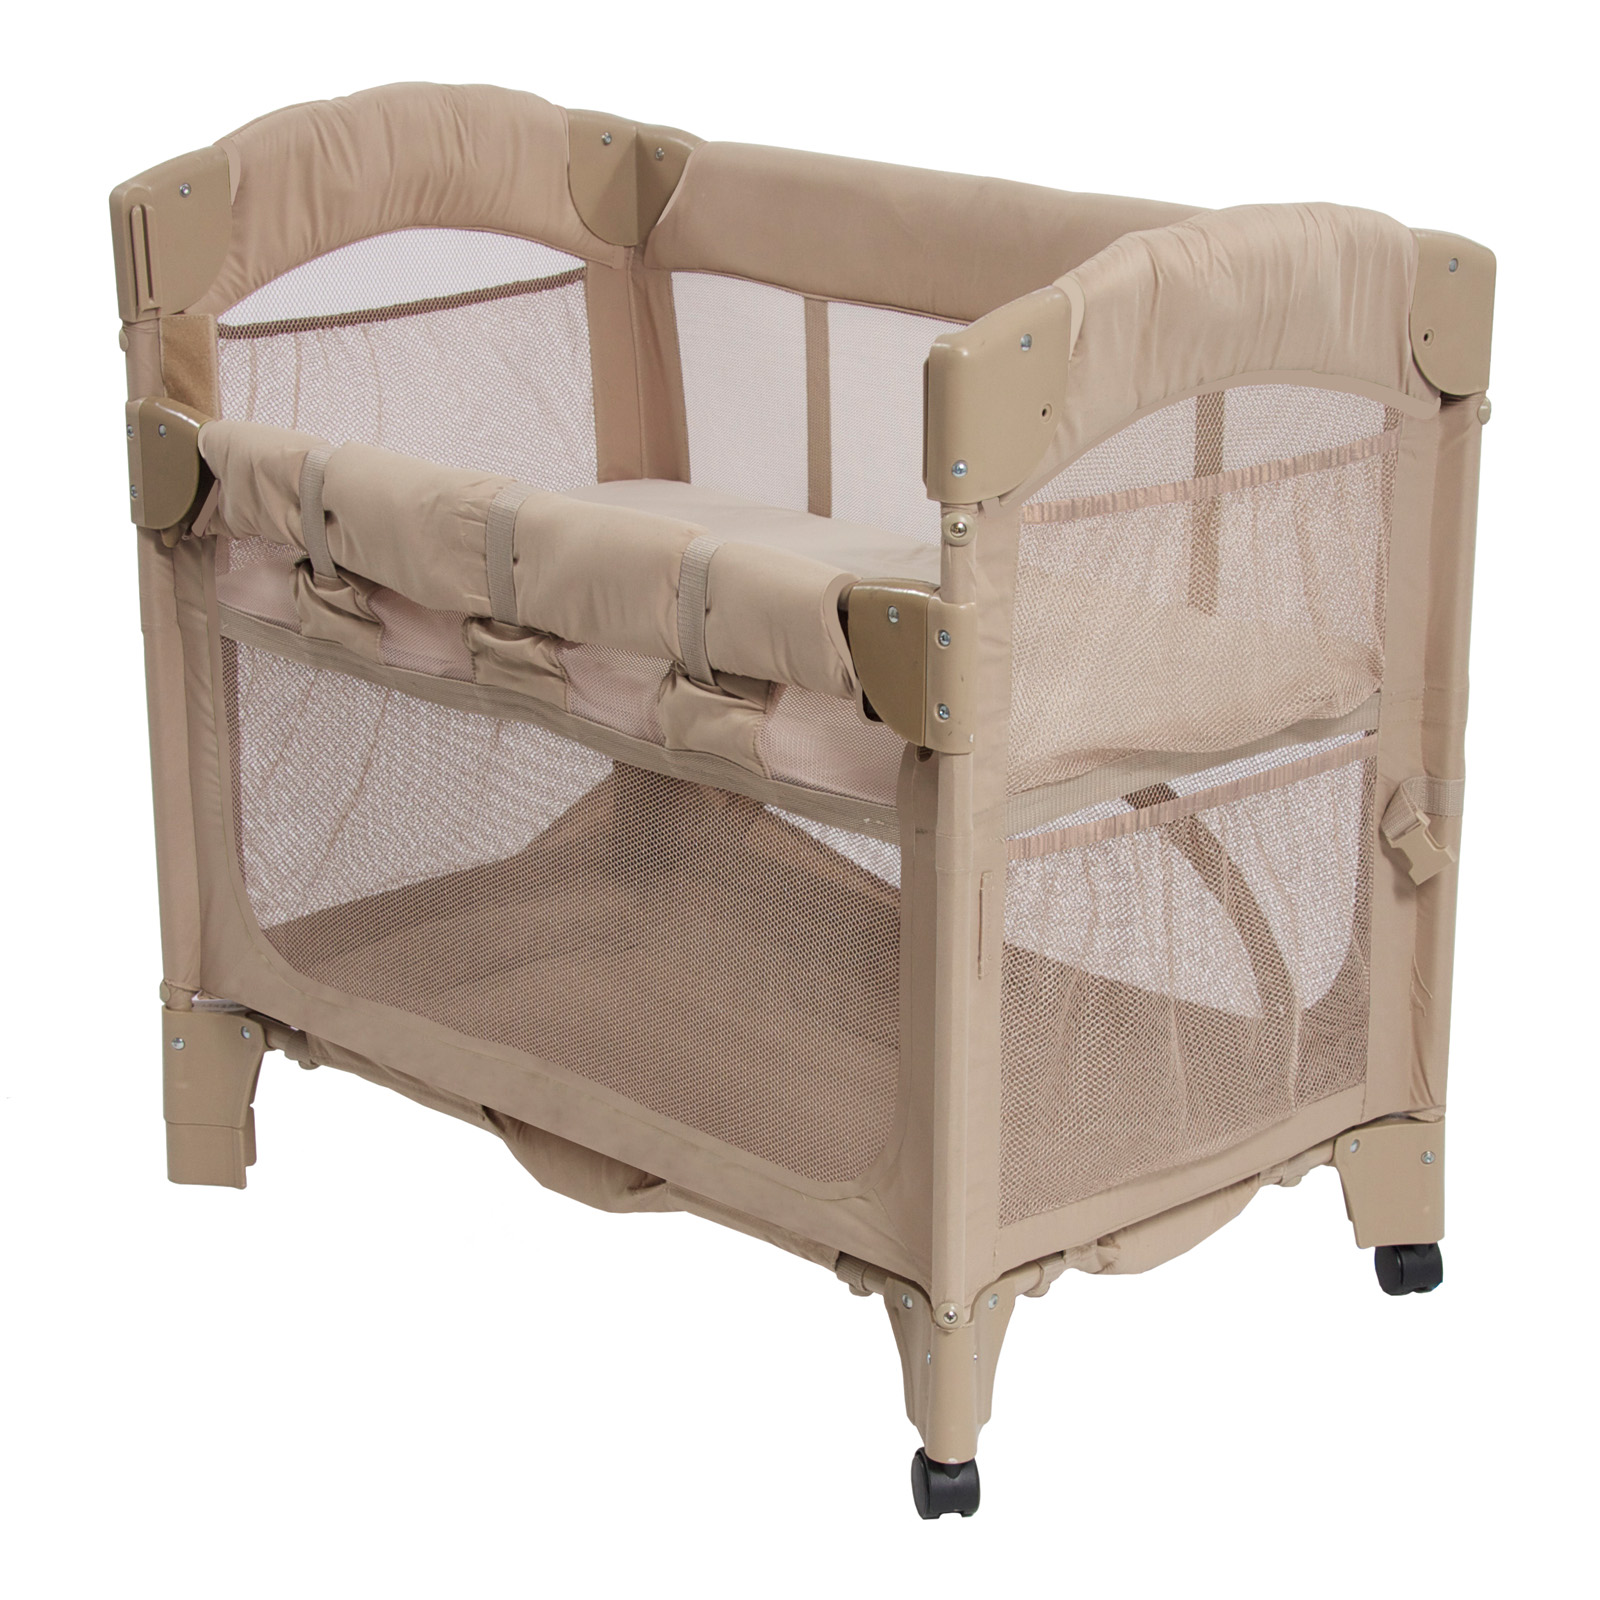 arms reach mini arc co sleeper bassinet cradles